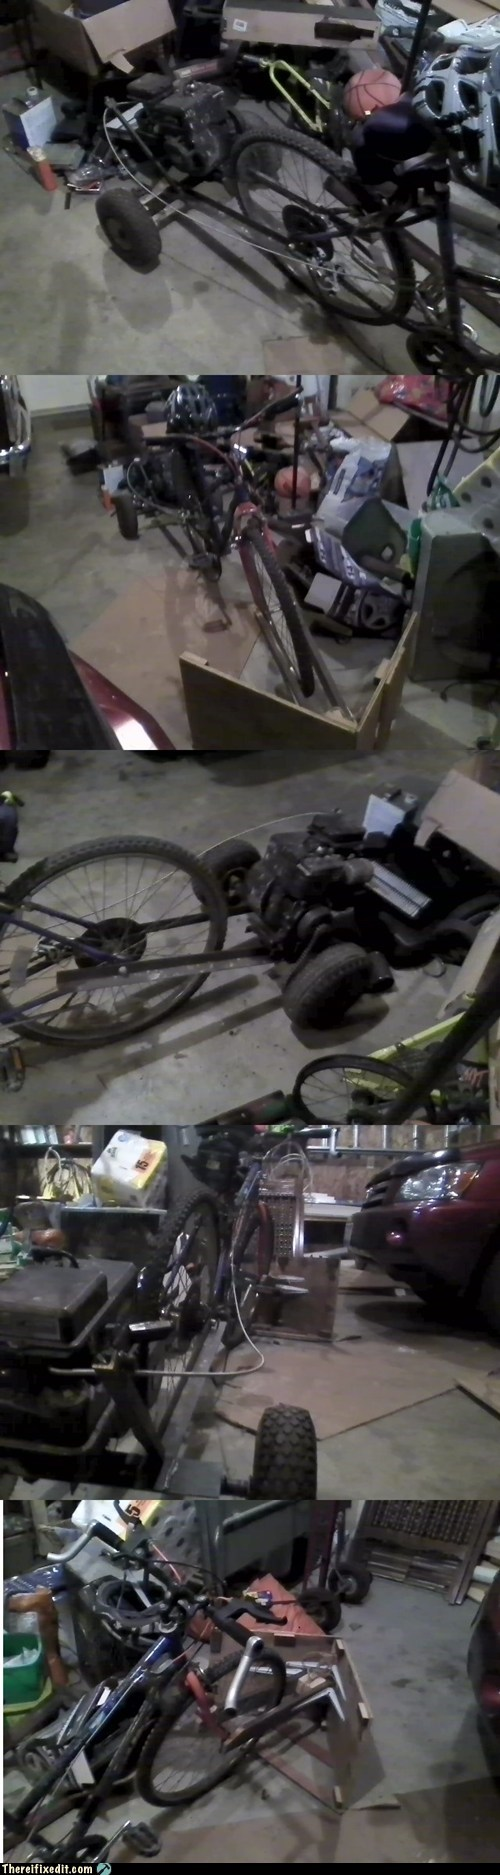 bicycle go kart snowmobile bike snow plow plow g rated there I fixed it